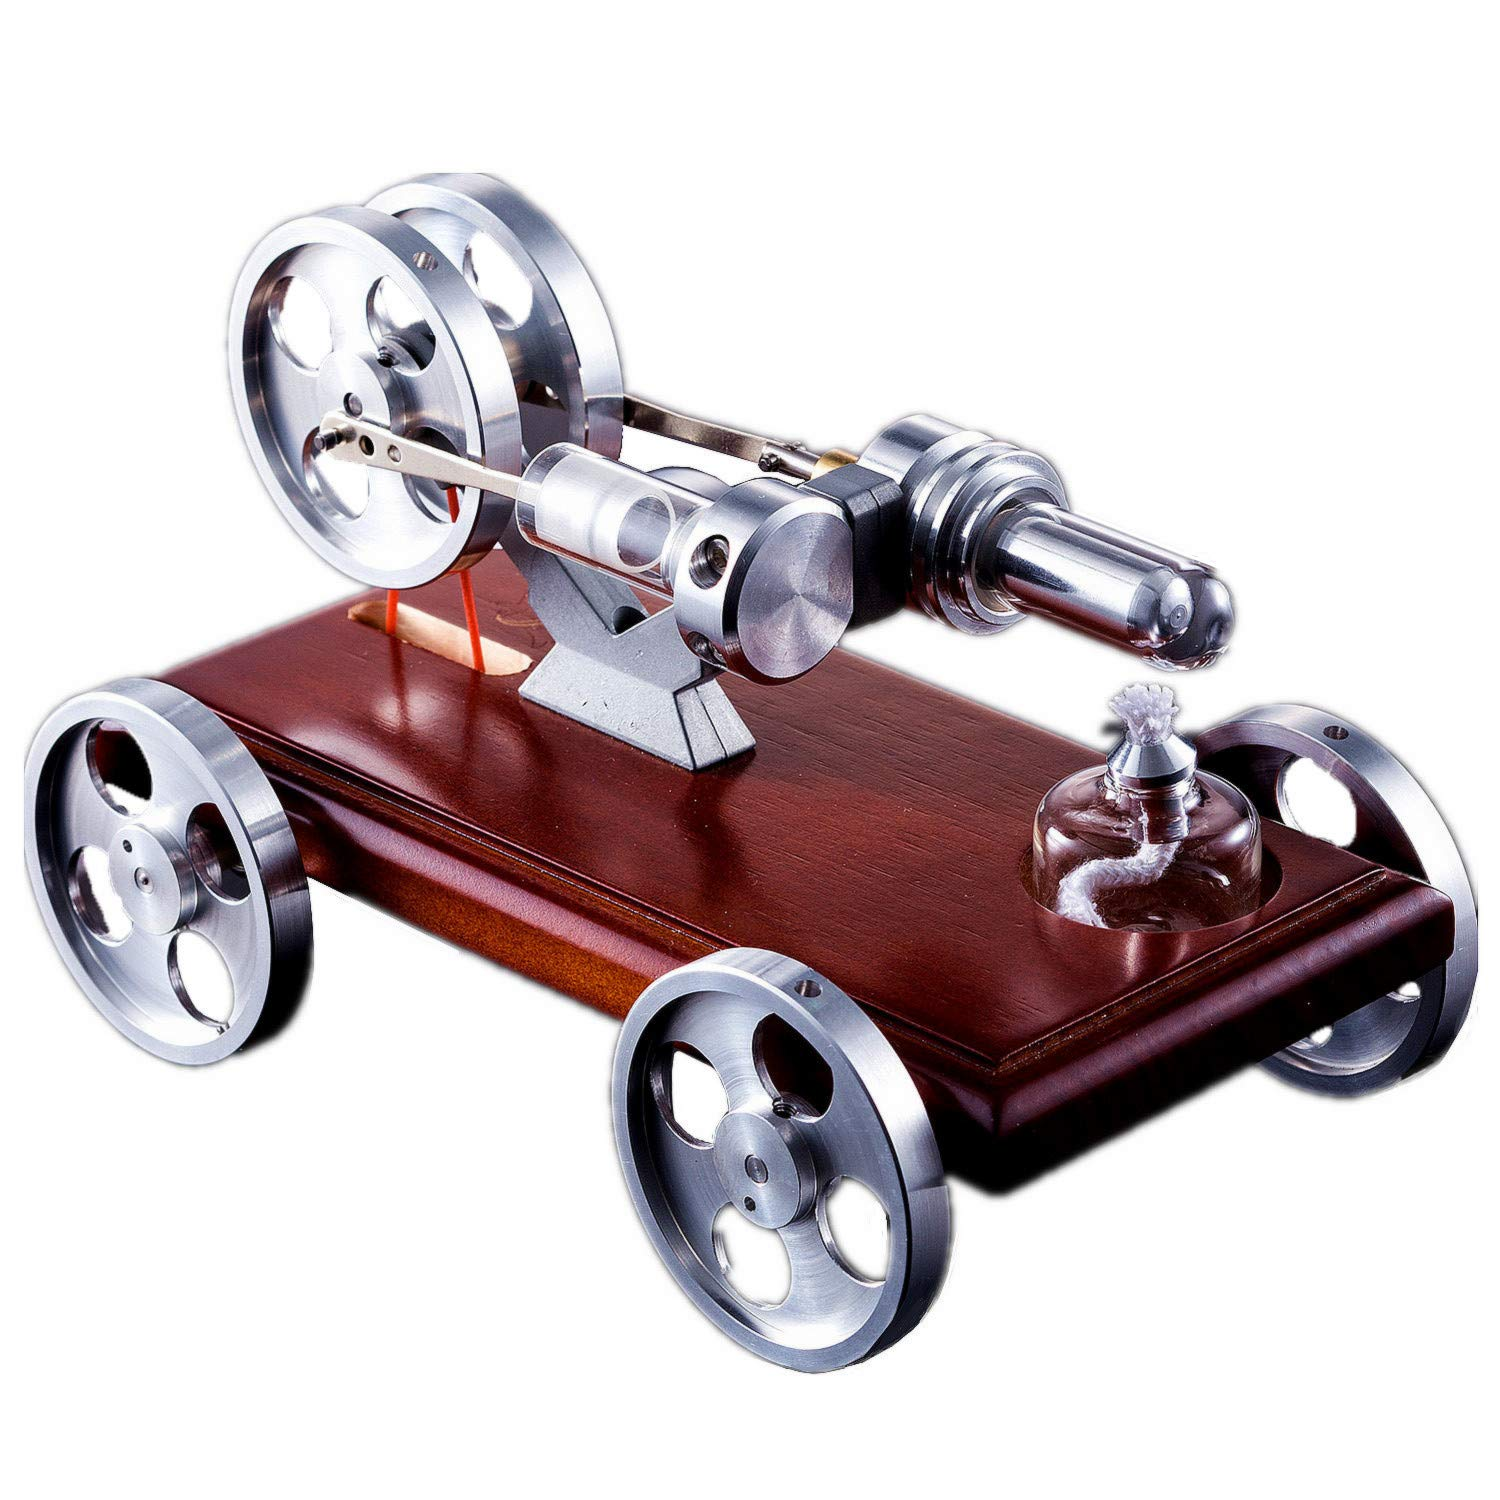 Funcoll C1 Stirling Motor Vehicle Model, Stirling Engine Car Prototype Model Scientific Model Toy